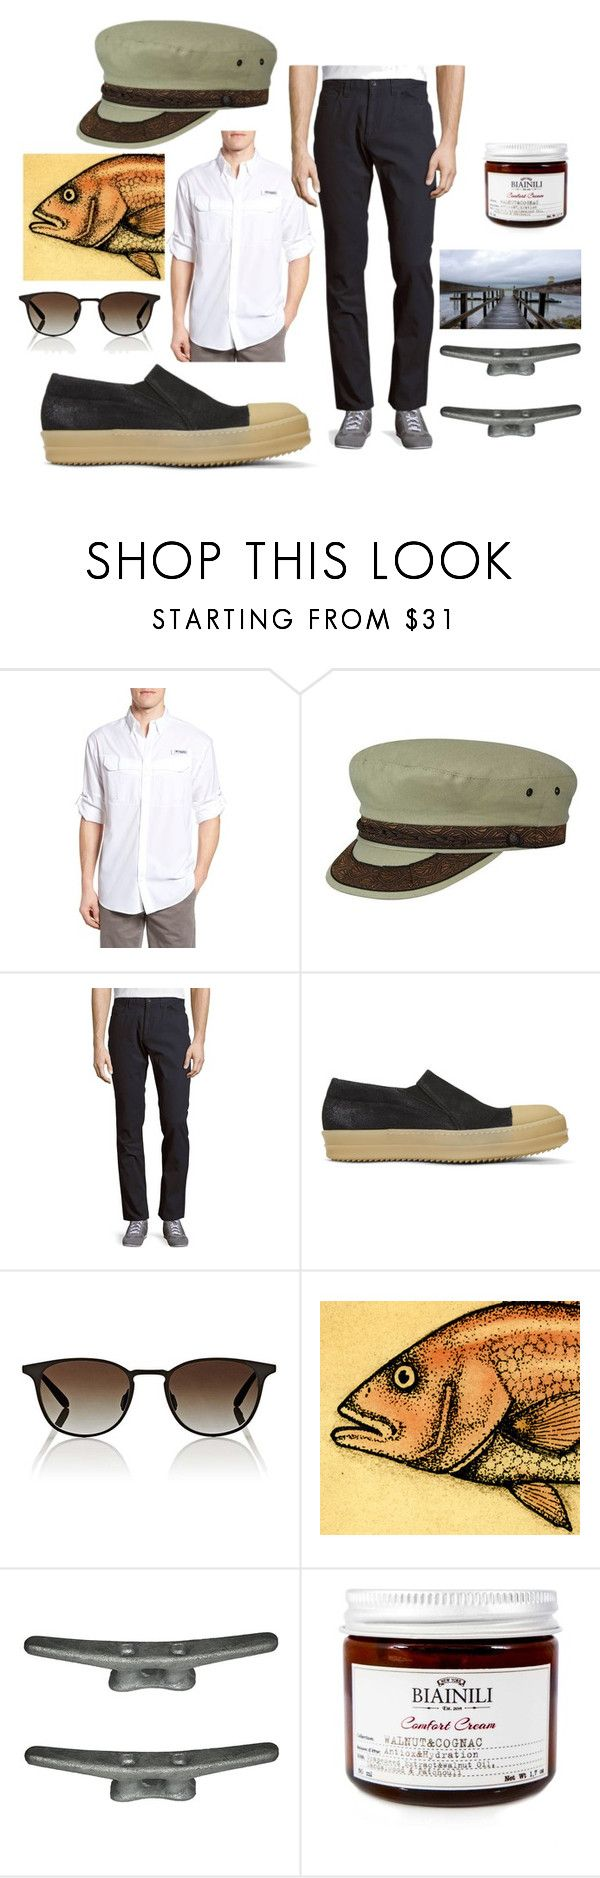 """""""Untitled #3774"""" by moestesoh ❤ liked on Polyvore featuring Columbia, Country Gentleman, Perry Ellis, Rick Owens, Garrett Leight, Game Fish and Seabrook"""